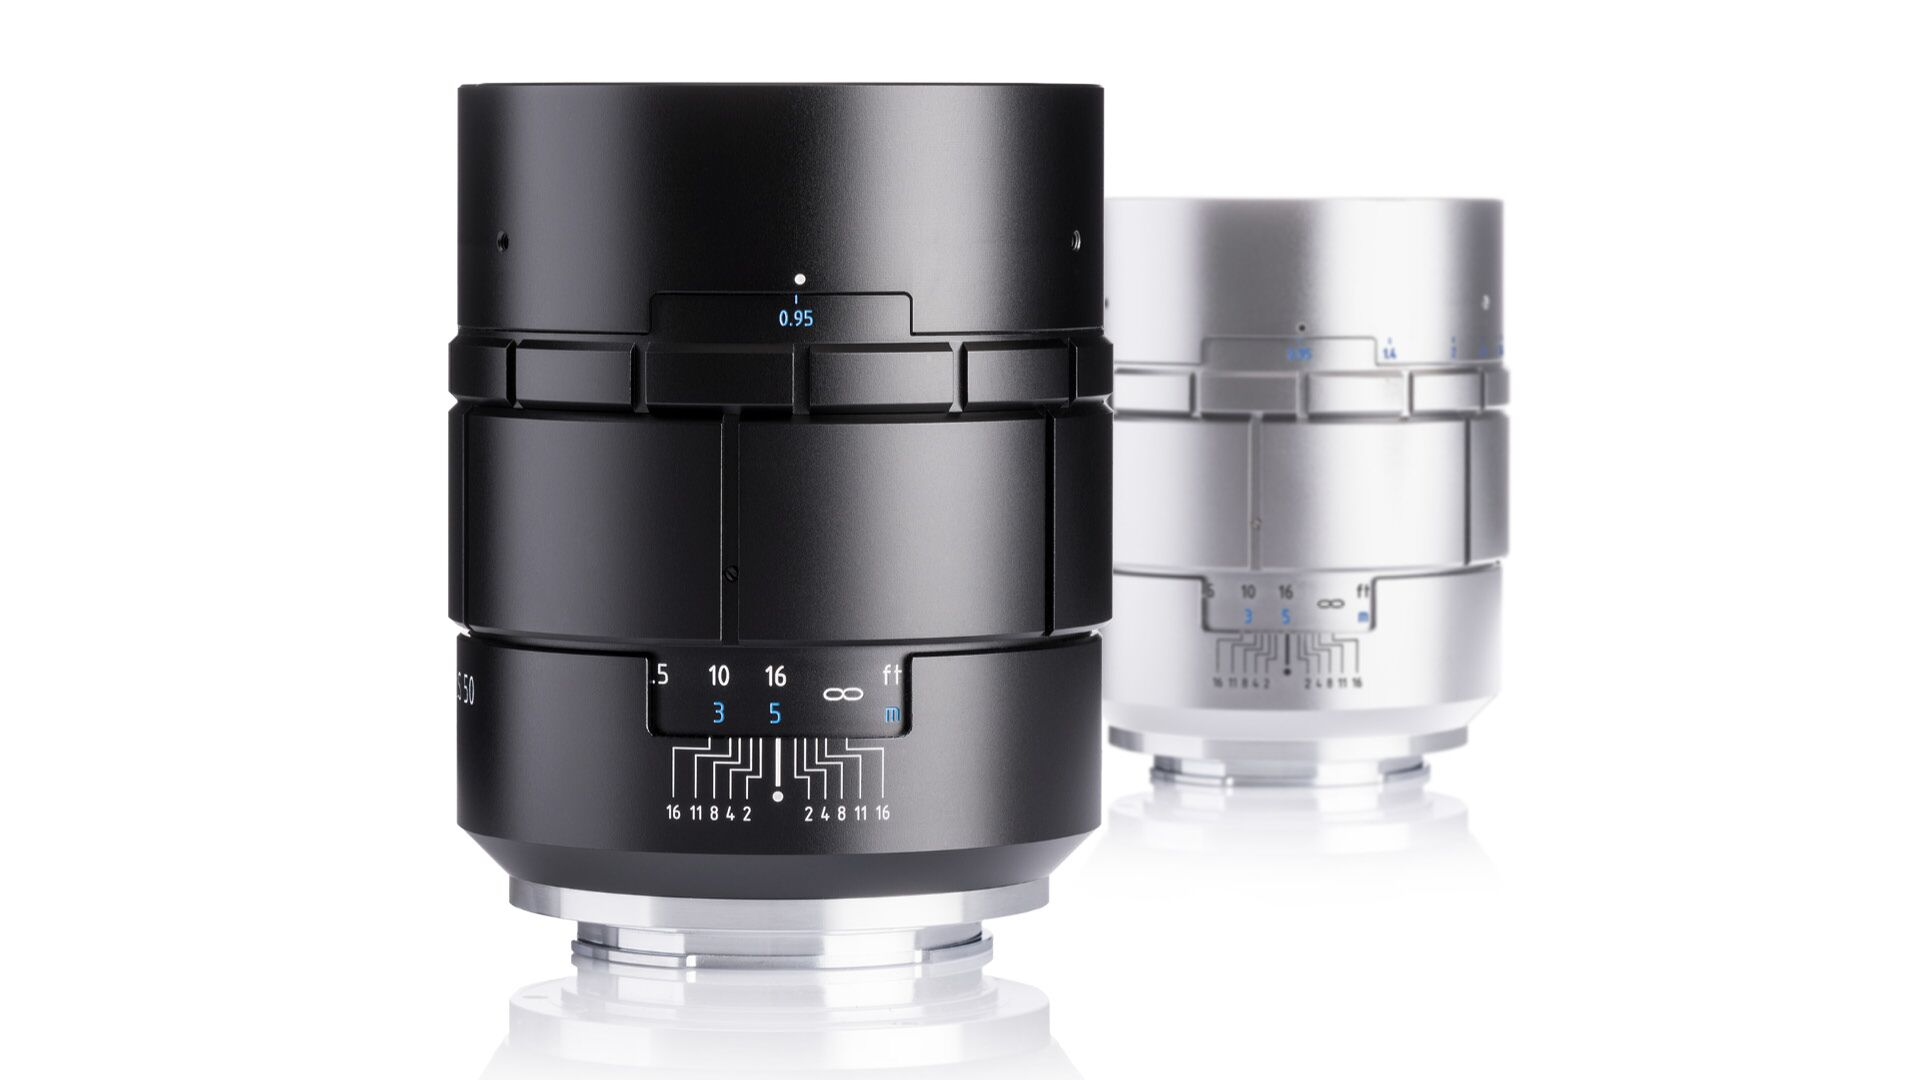 Kết quả hình ảnh cho Nocturnus 50 f/0.95 II and Nocturnus 35mm f/0.95 lenses for Sony E-mount.